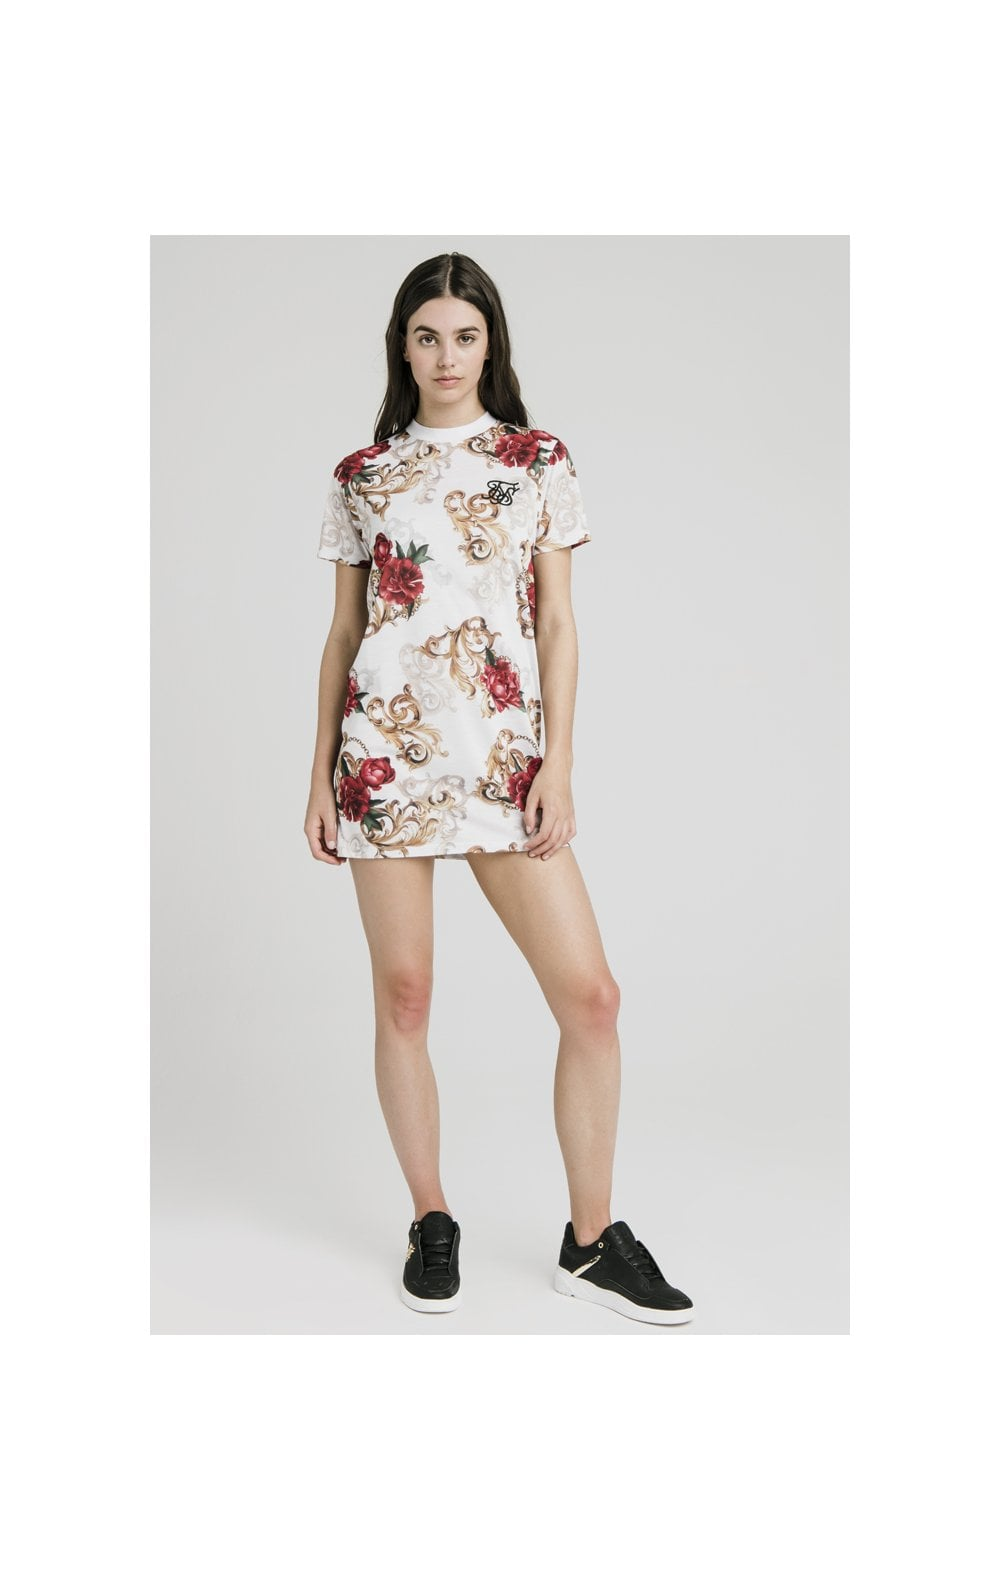 SikSilk T-Shirt Dress - White & Floral Elegance (3)